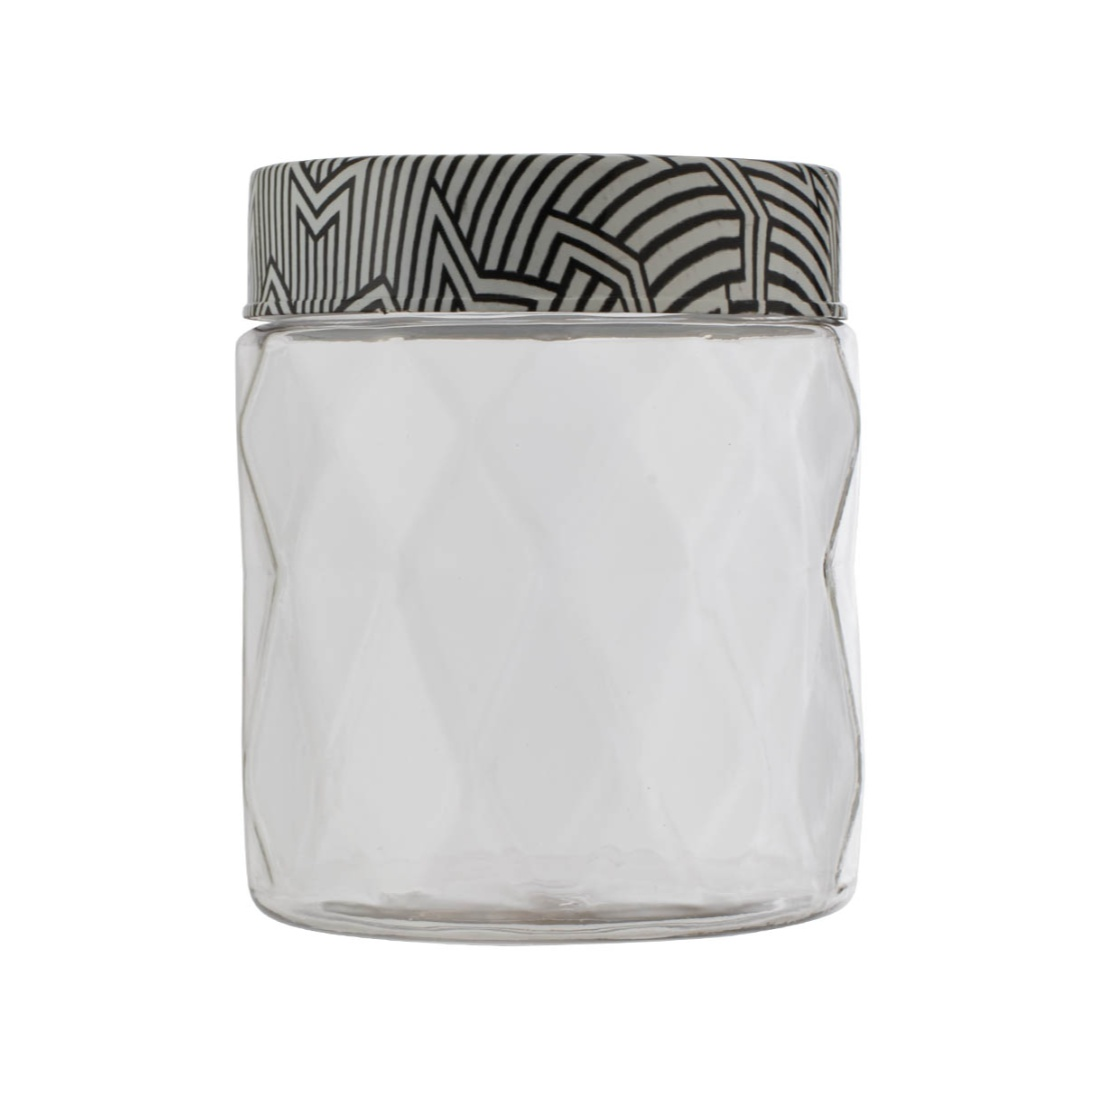 Clark Container 1500ml Glass Containers in Transparent Container & Black Whitelid Colour by Living Essence